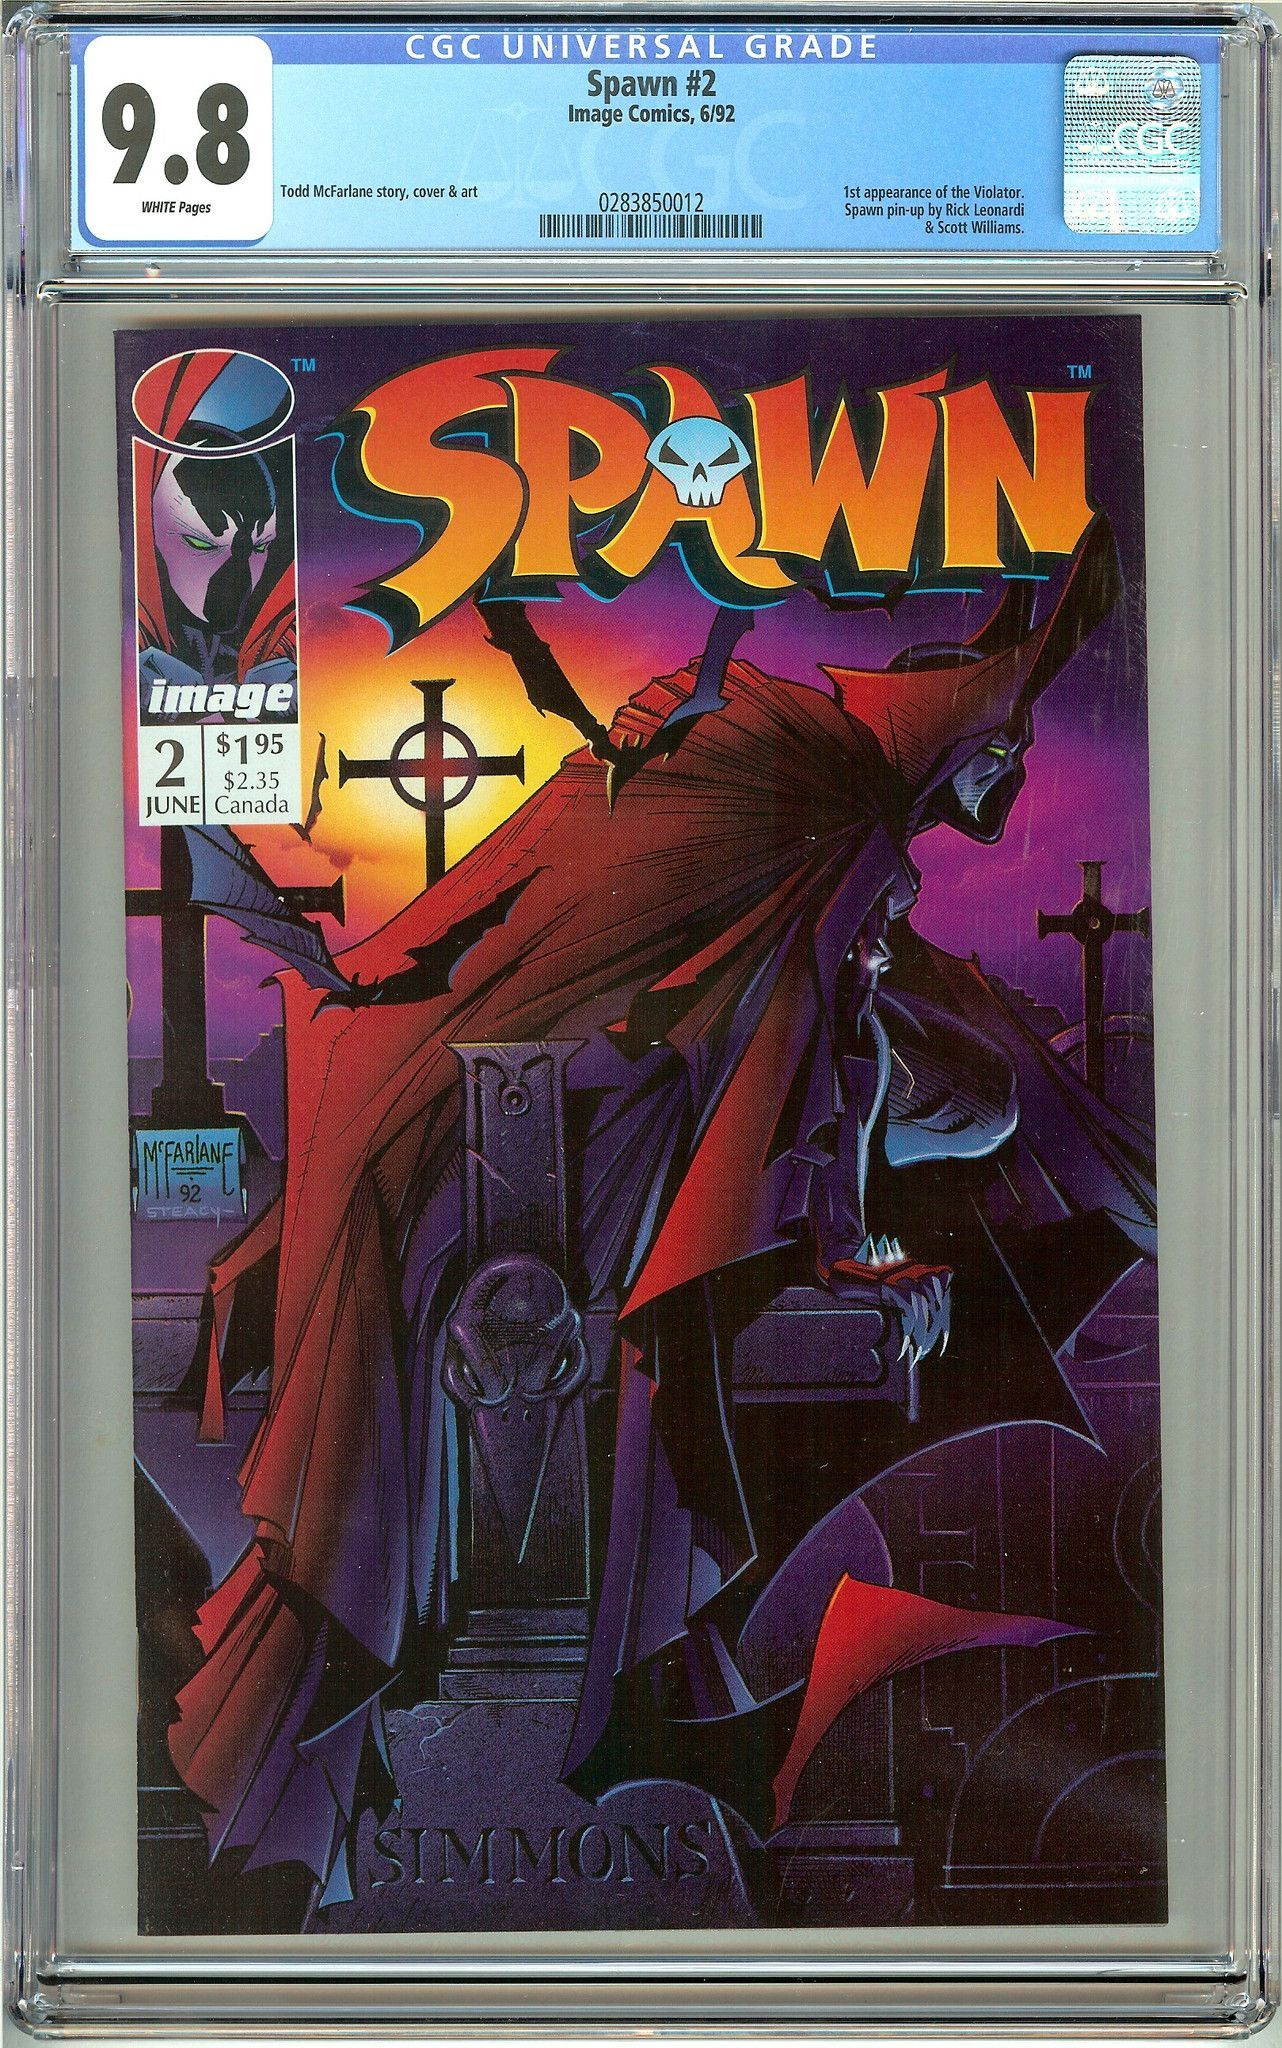 Spawn #2 (1992) CGC 9.8 White Pages 0283850012